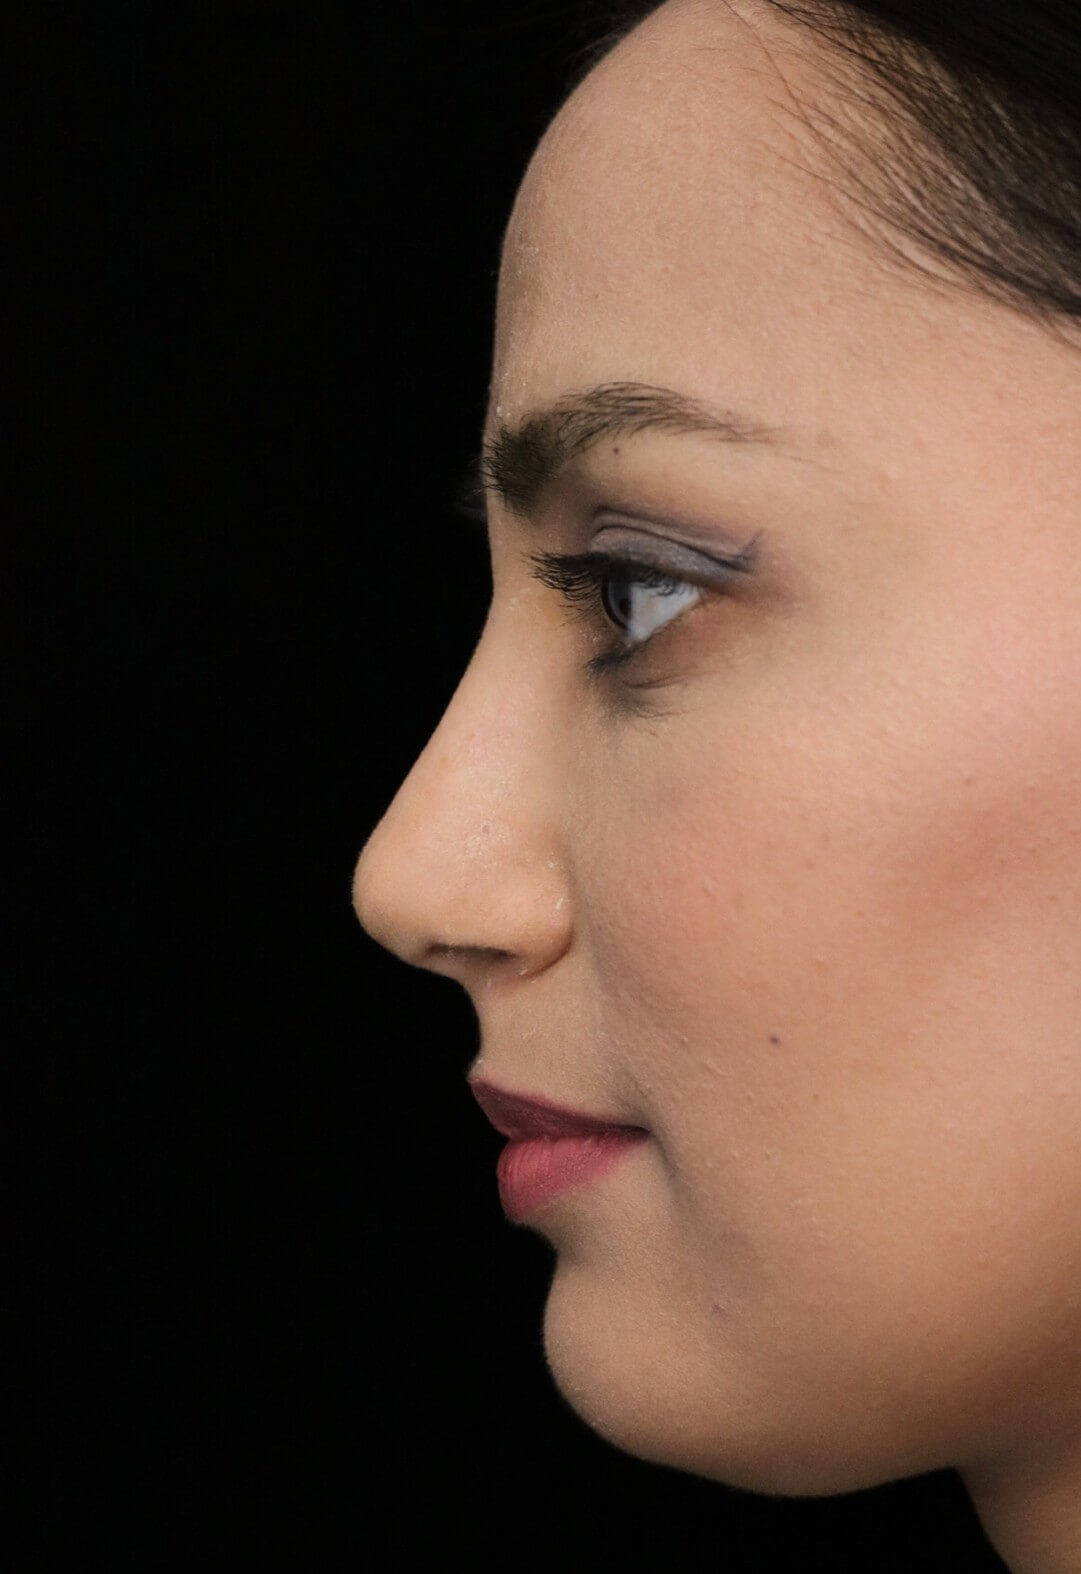 before and after photo on a right profile view of a non-smiling female middle eastern patient  who underwent non-surgical rhinoplasty